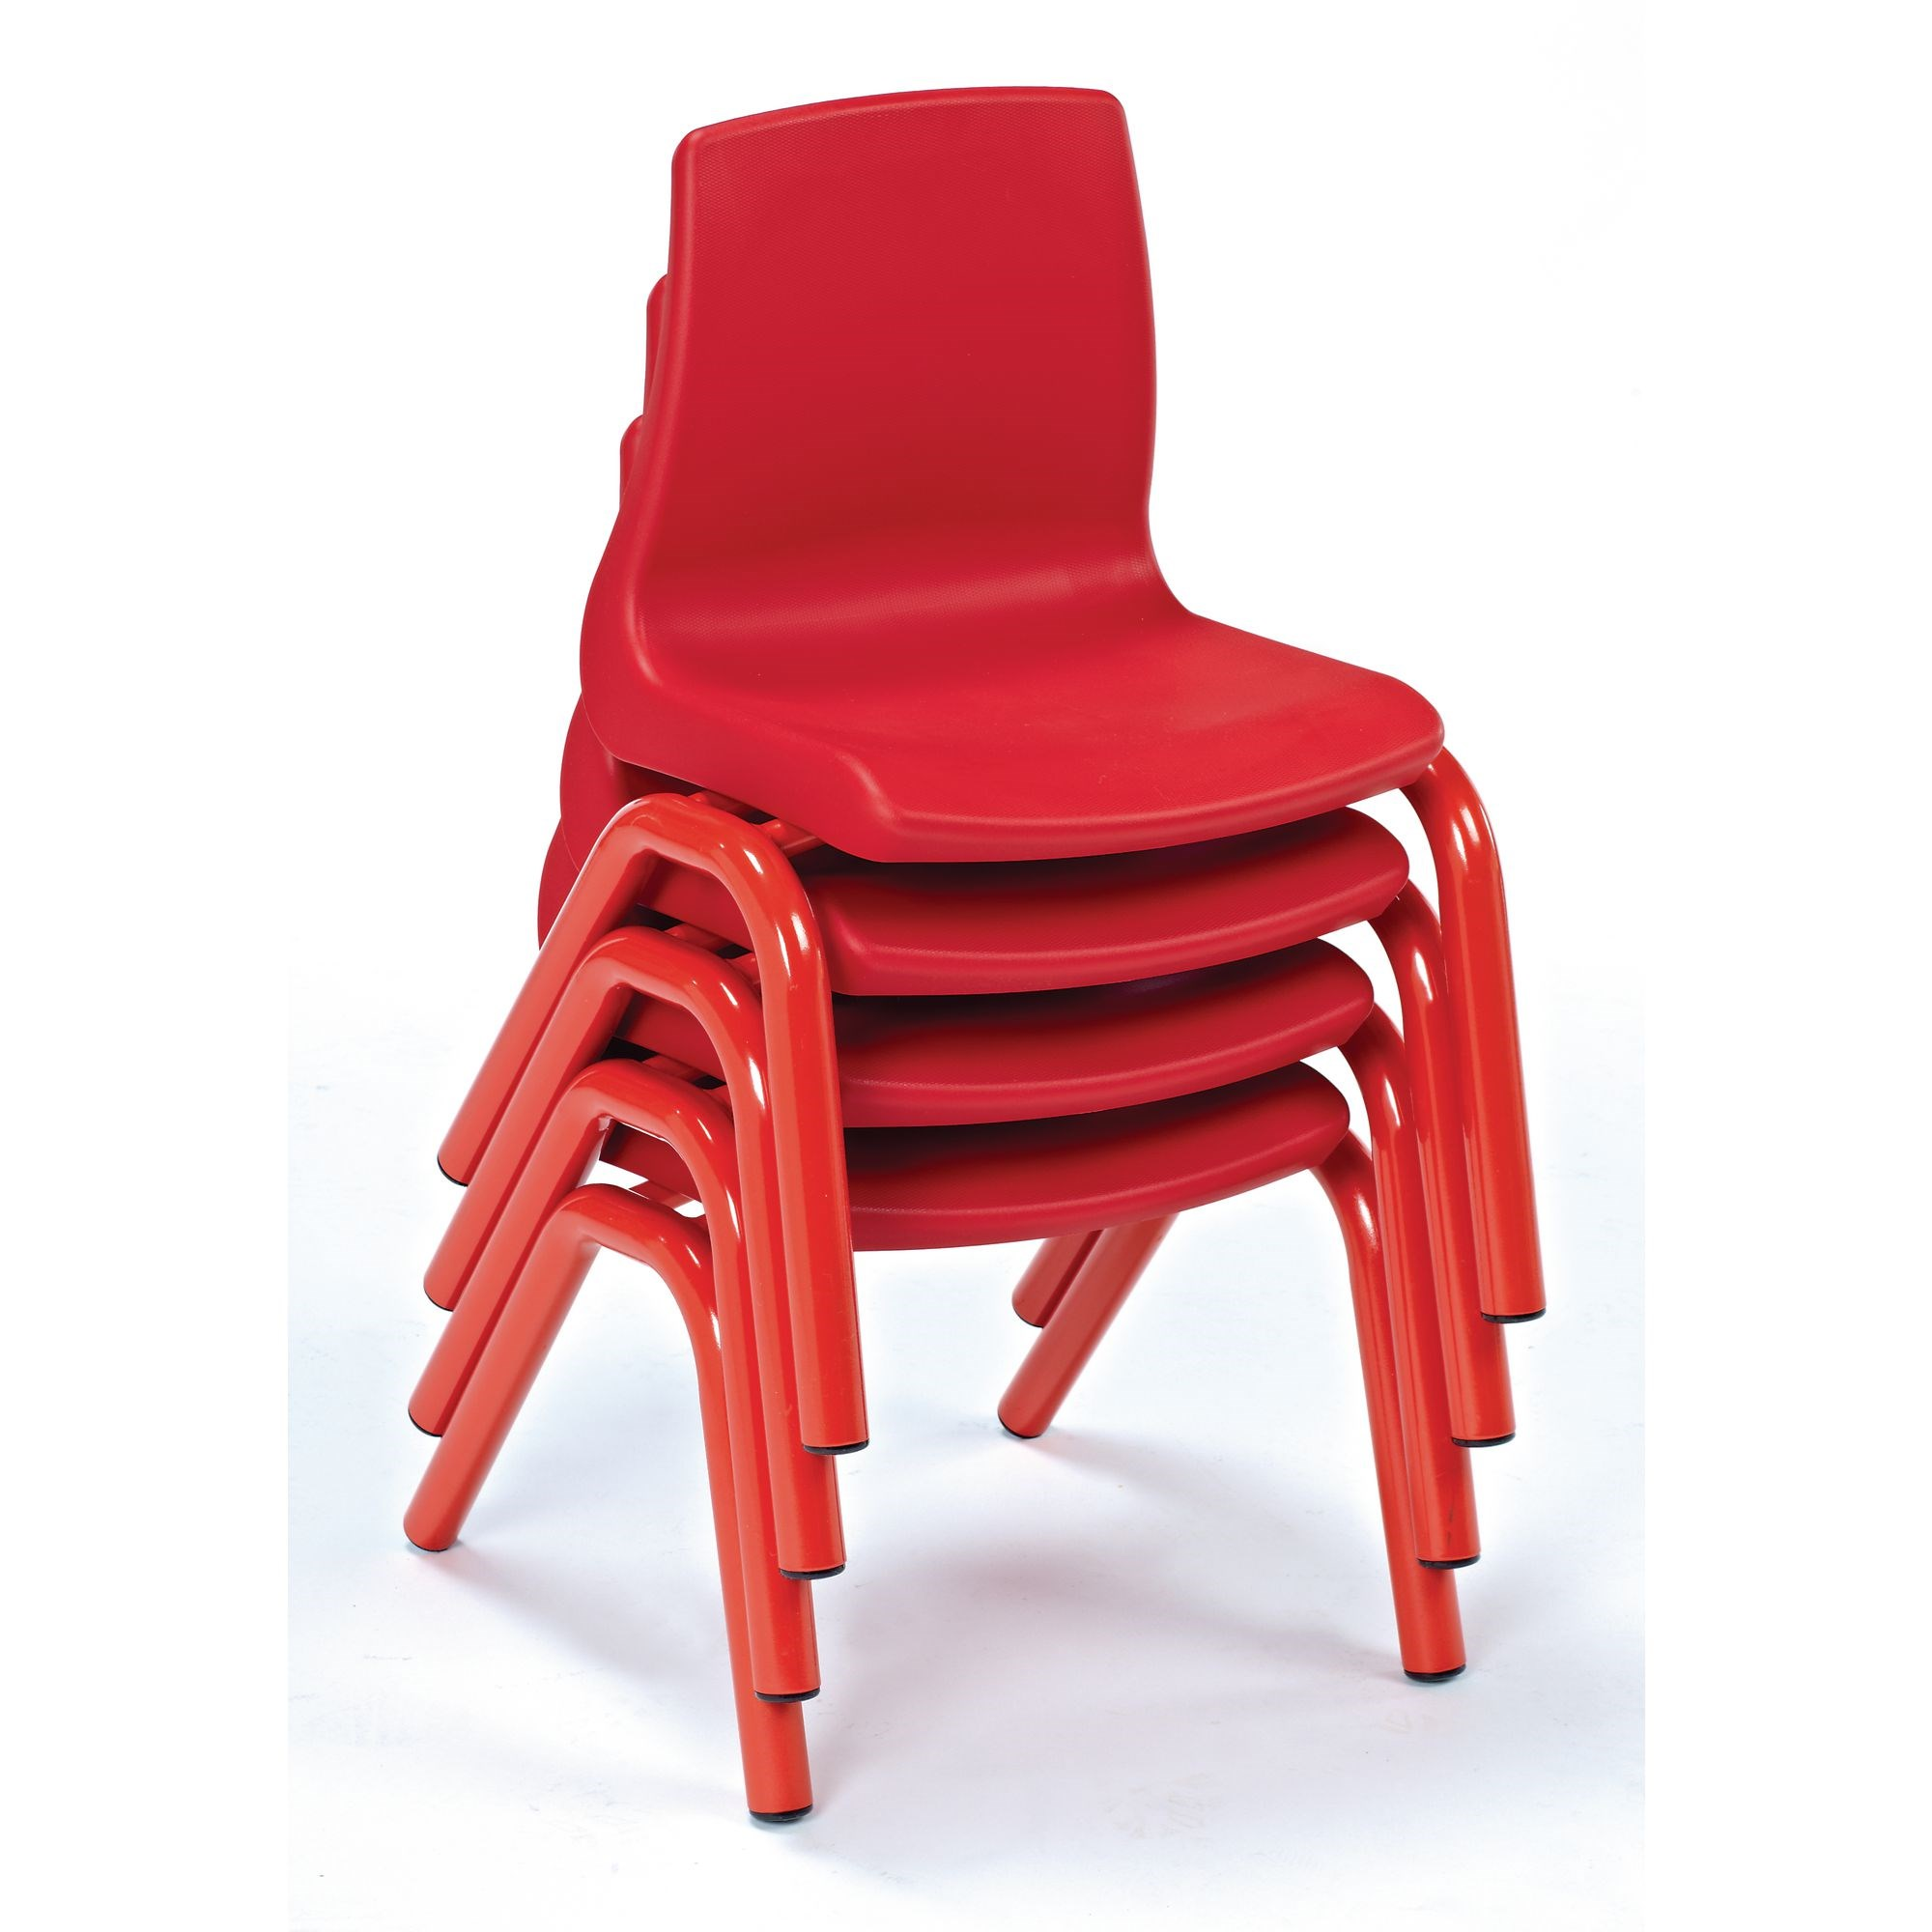 Harlequin Chairs Size B Red